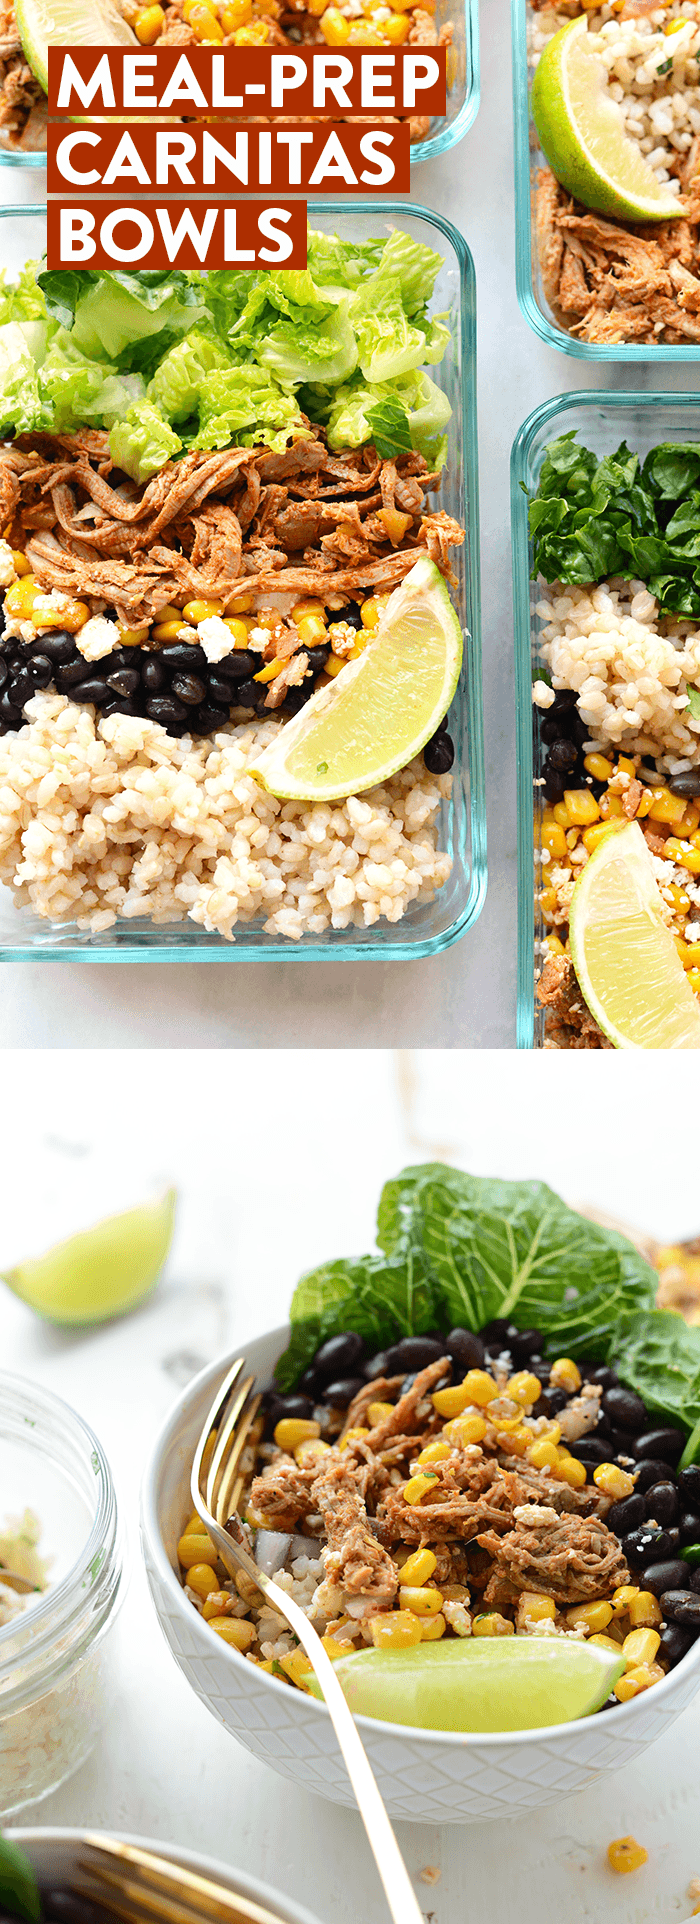 20 Lunches You Can Meal Prep on Sunday images